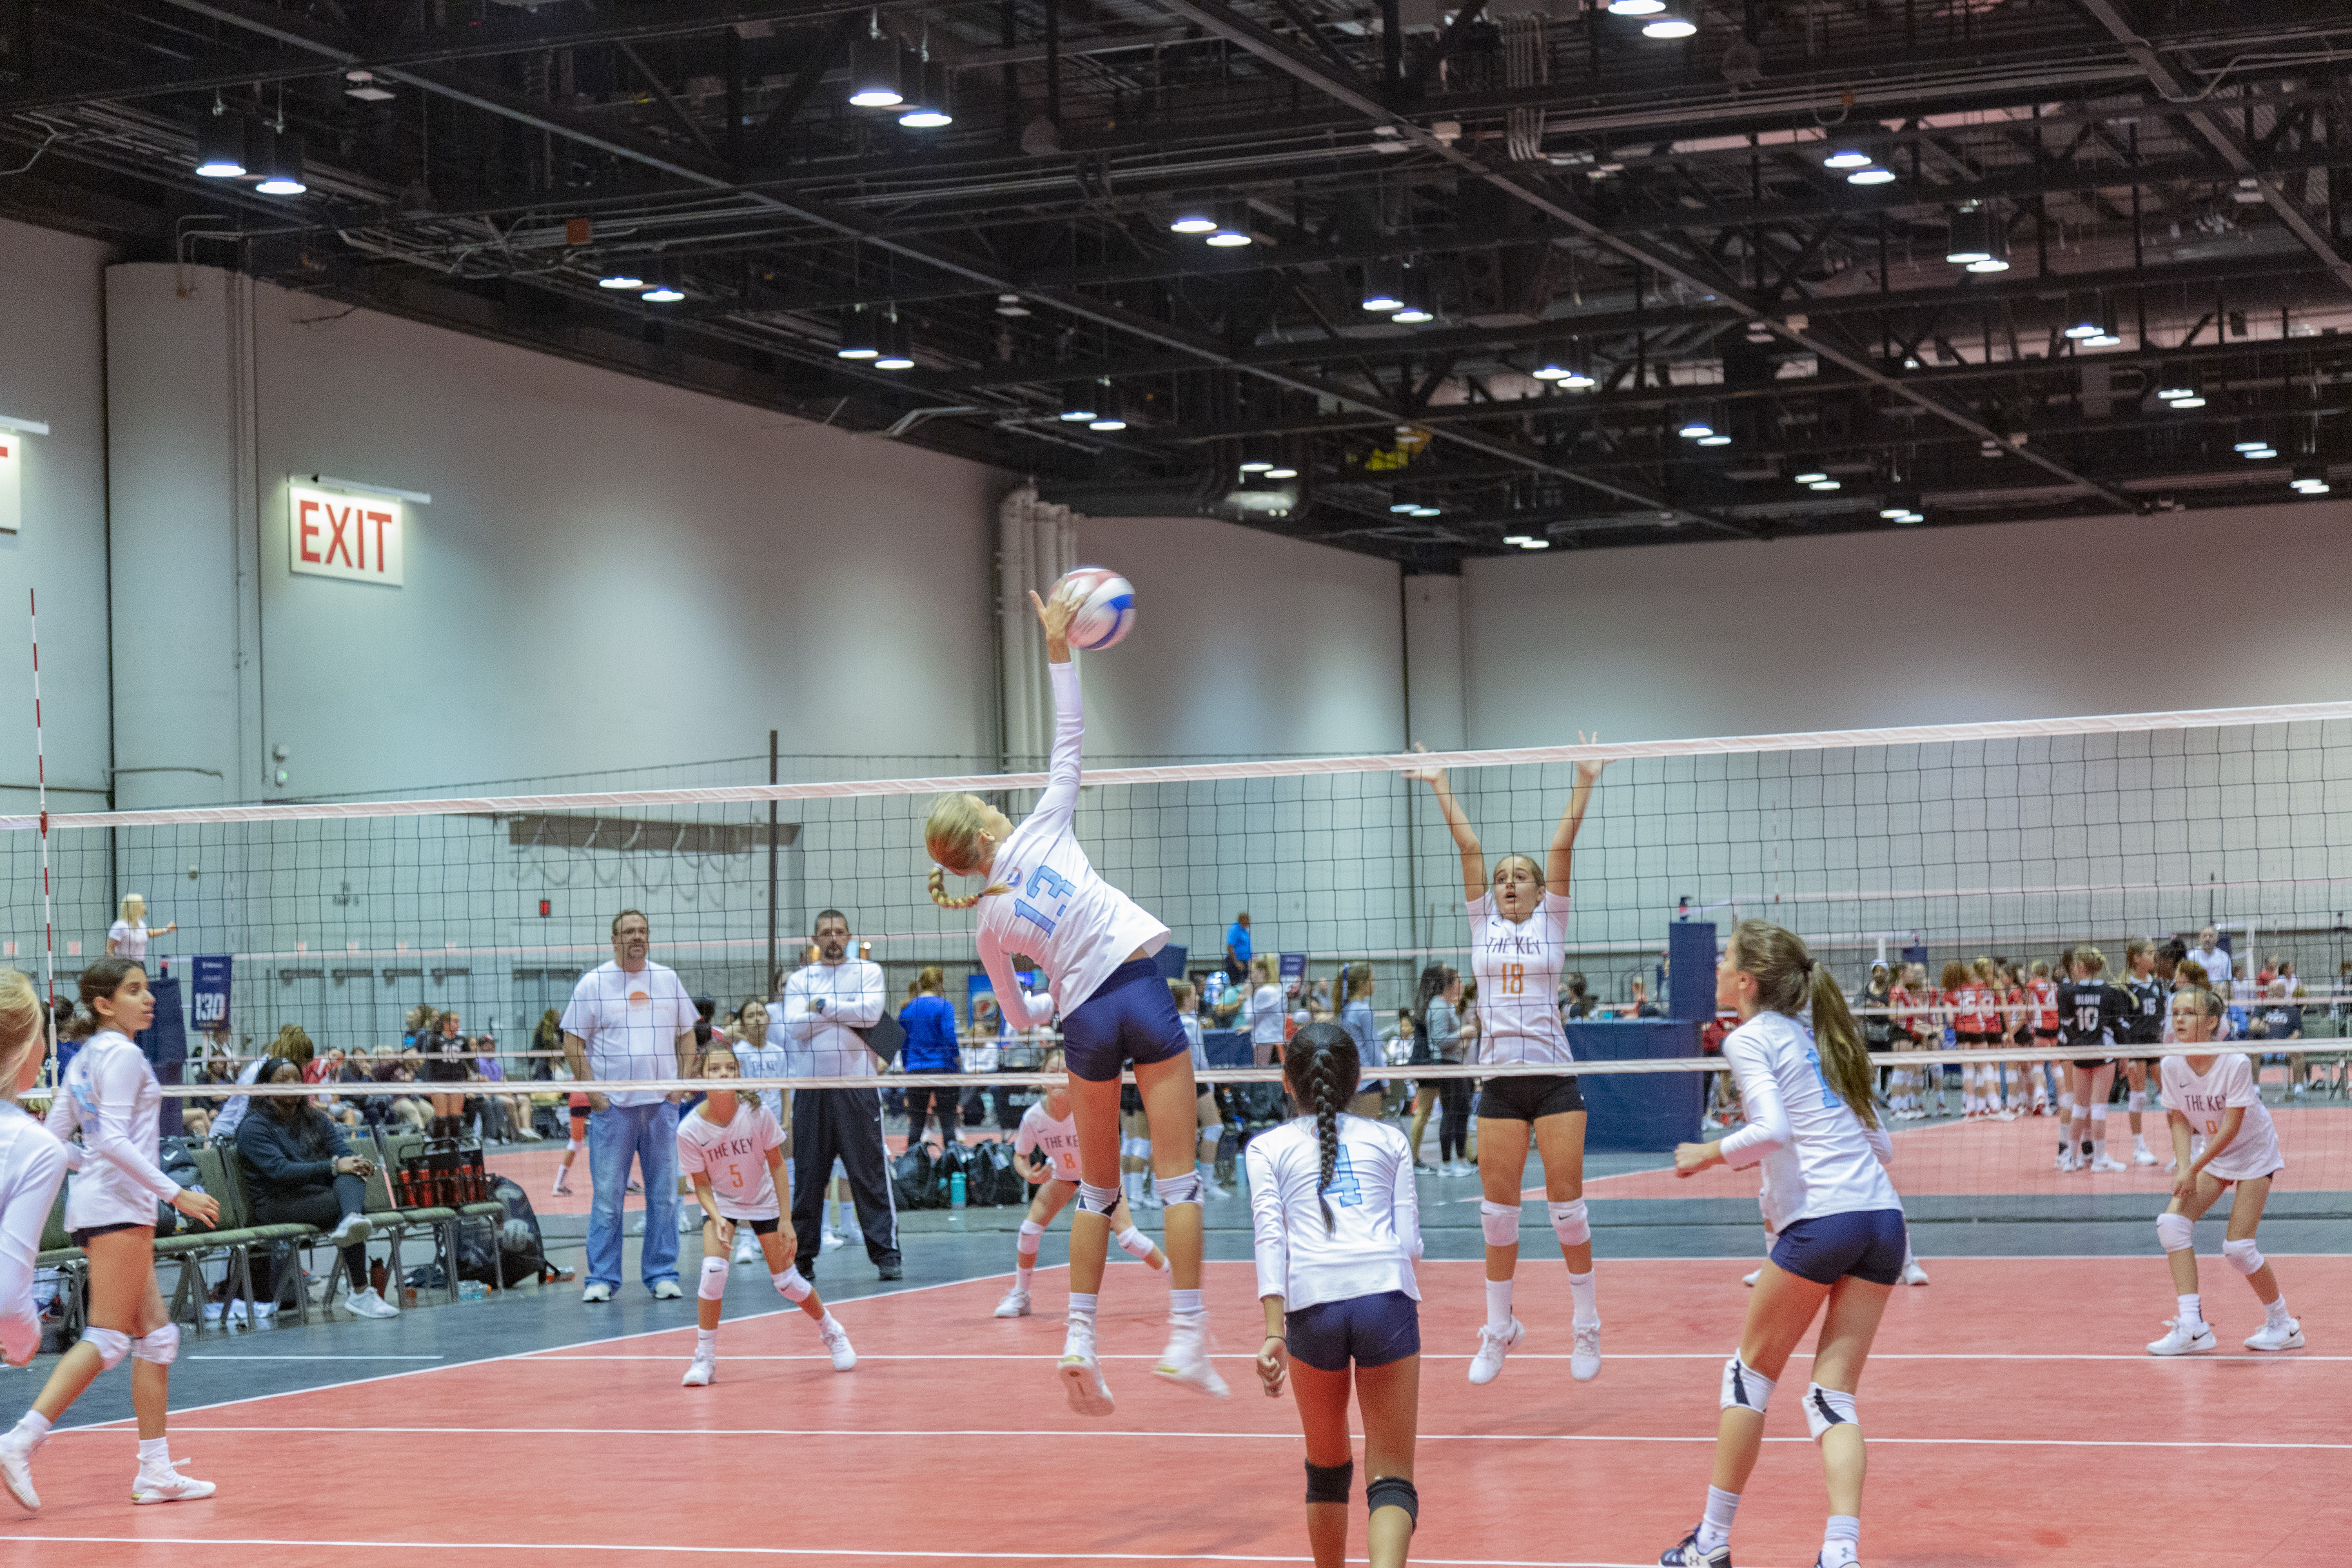 The Sunshine Classic Tournament Kicks off Volleyball Season at the Orange County Convention Center